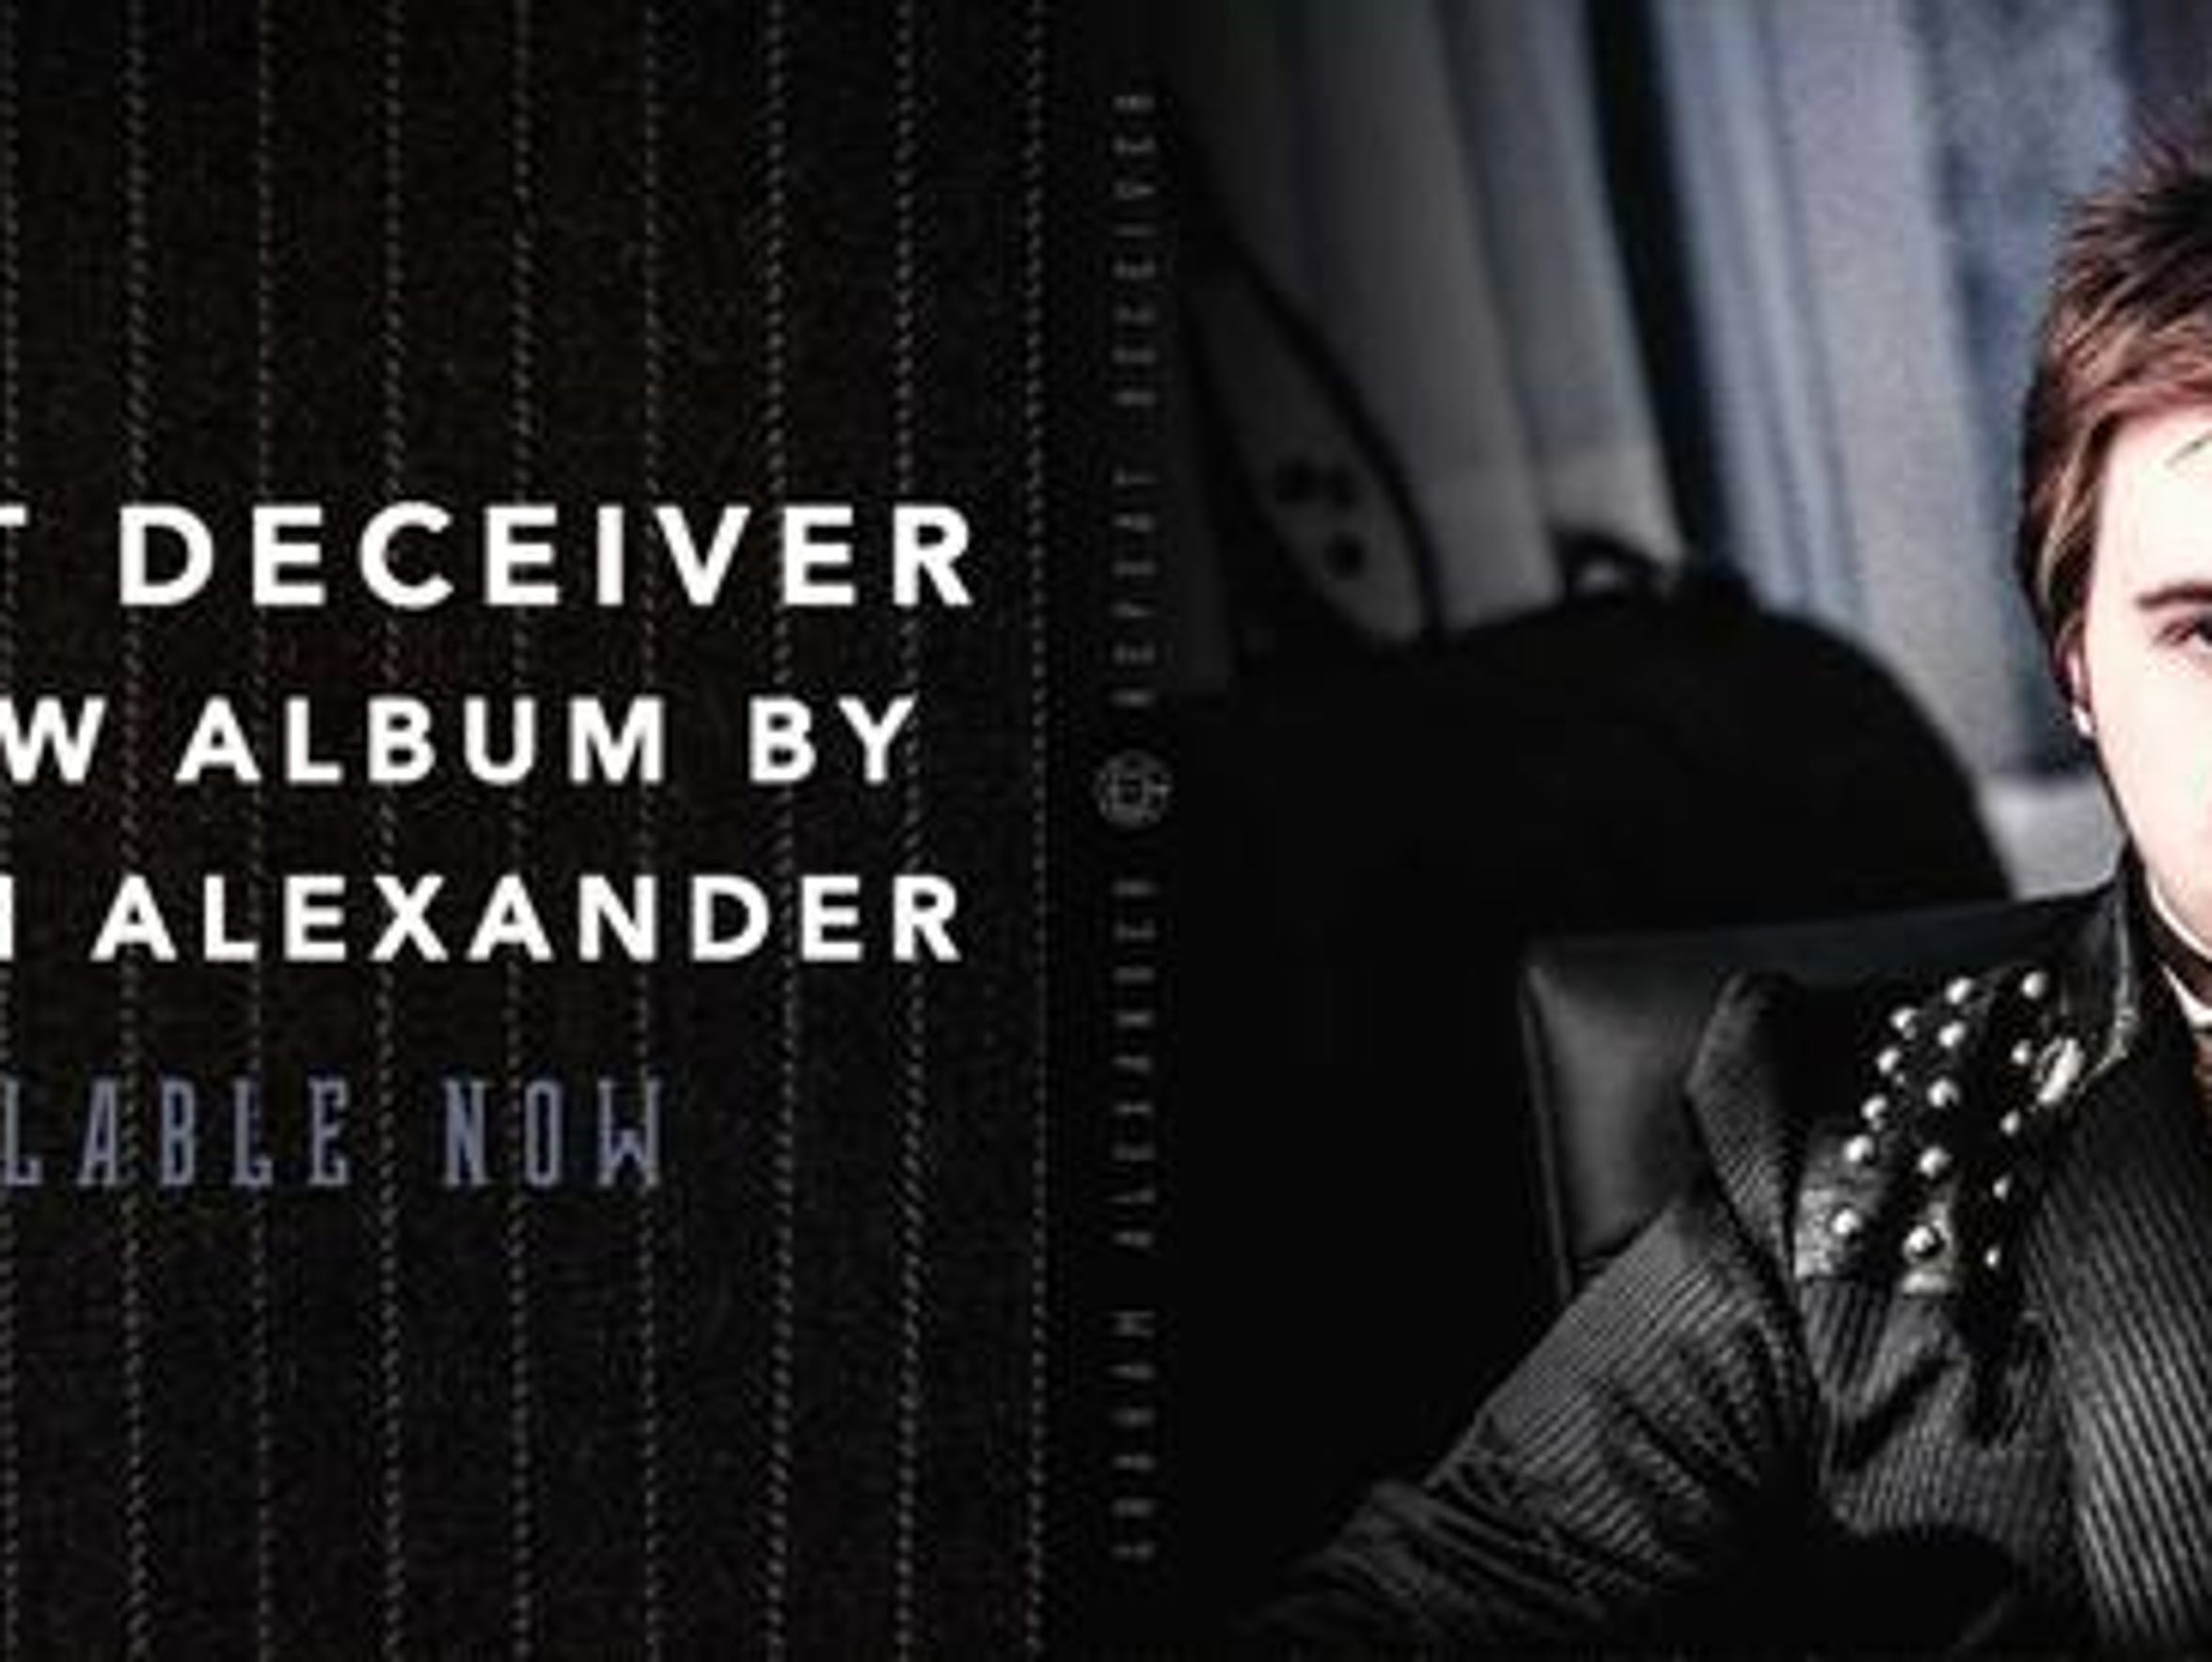 'Rep[eat Deceiver' is a new album by Graham Alexander,